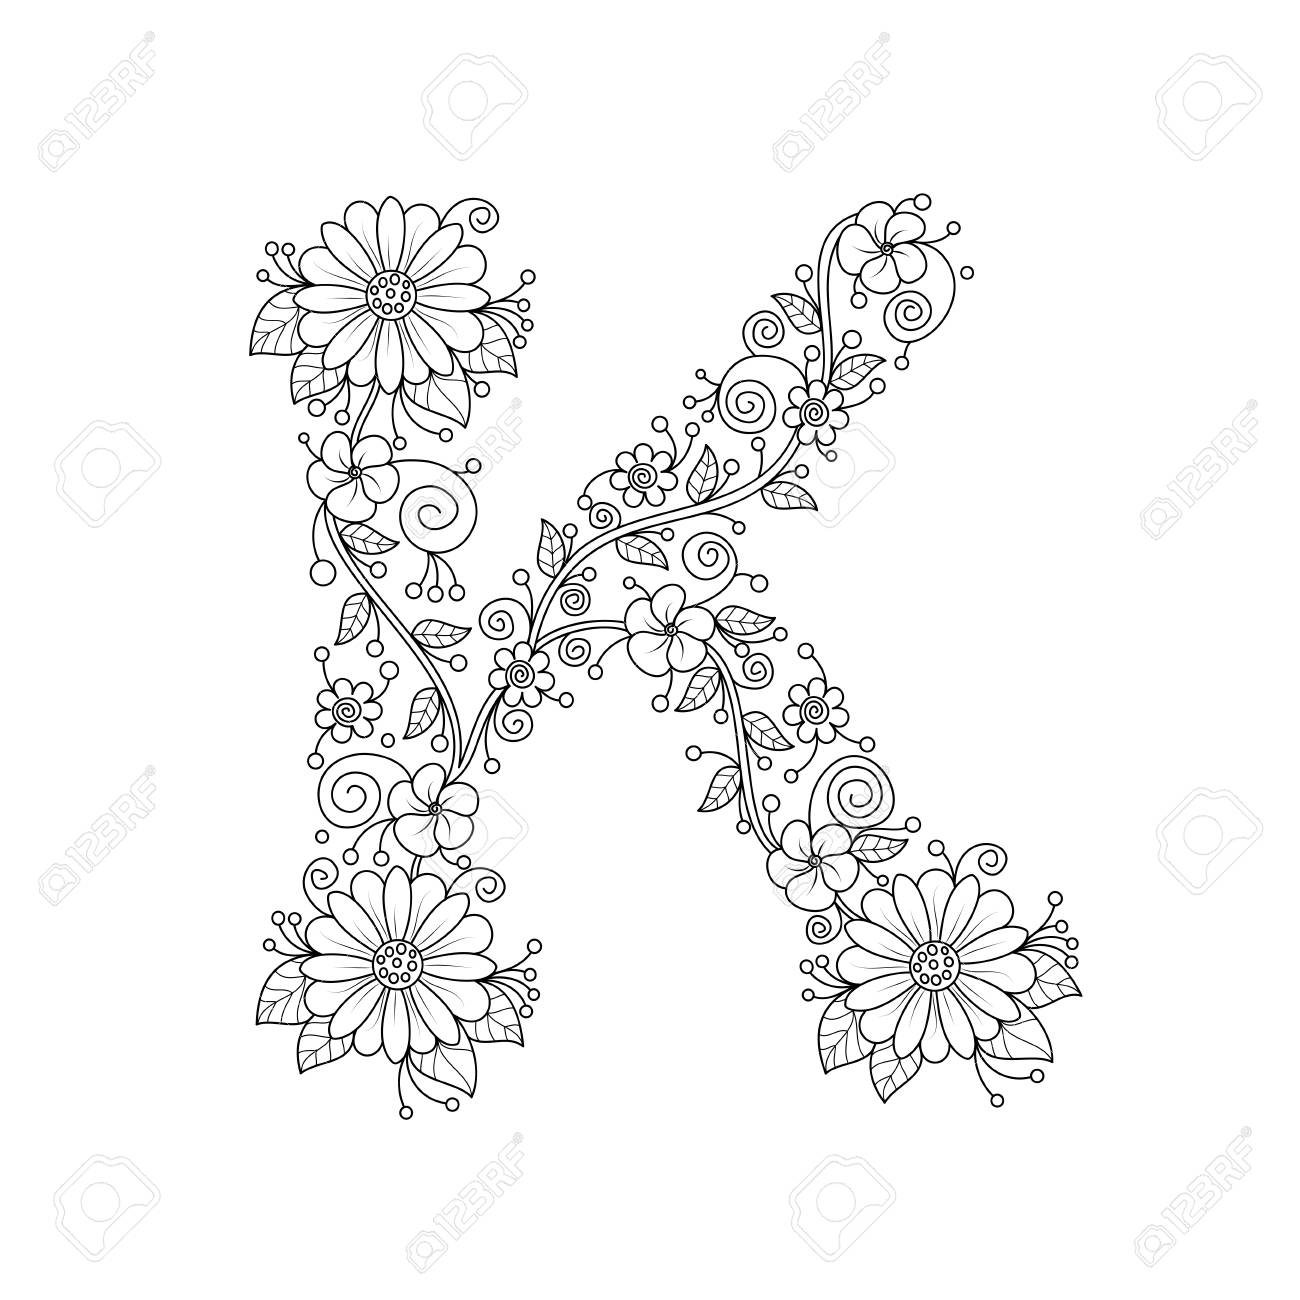 Floral Alphabet Letter K Coloring Book For Adults. Vector ...